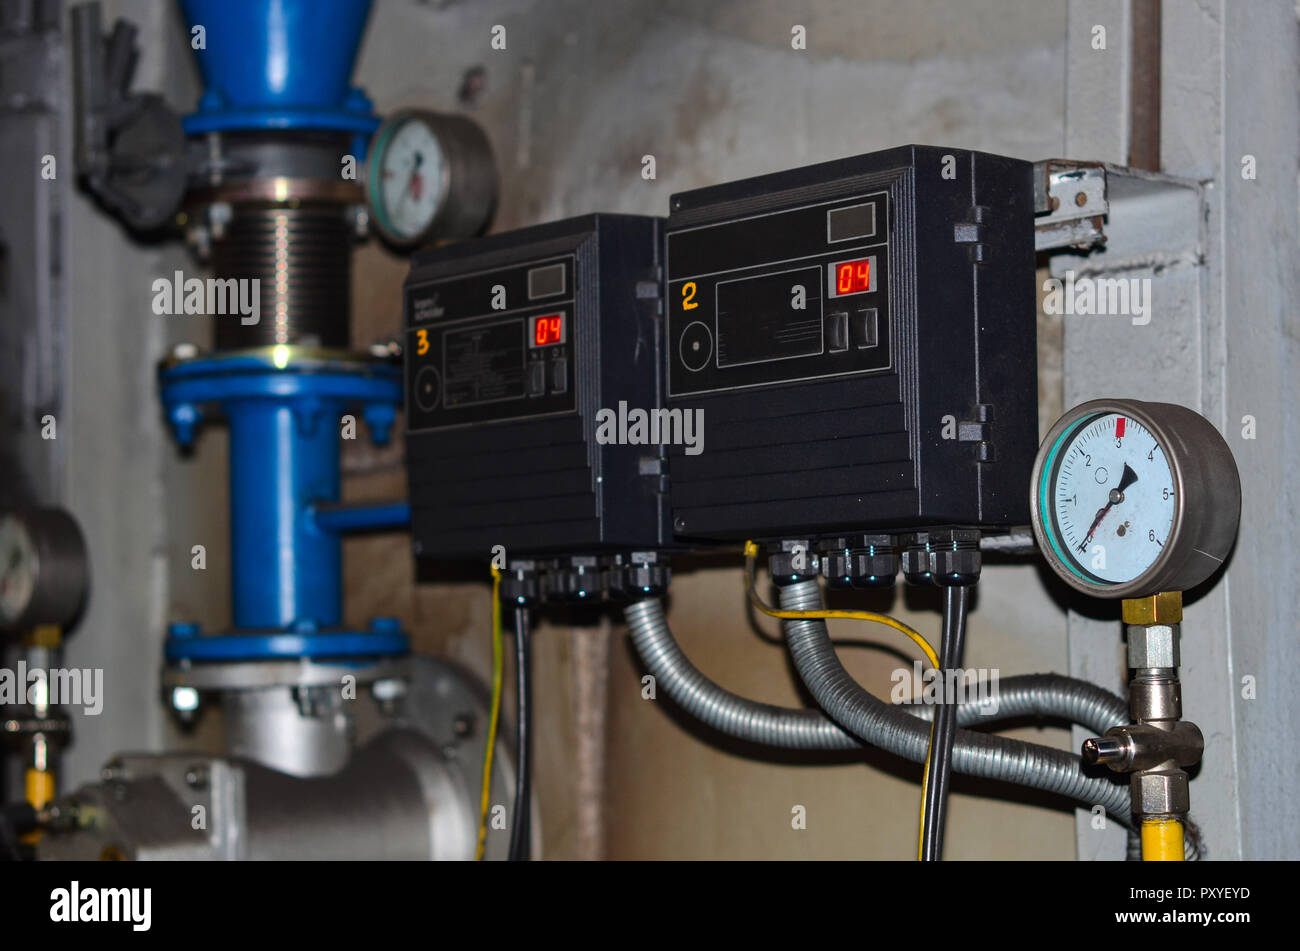 Electric power meter measuring power usage. Watt hour electric meter measurement tool. - Stock Image